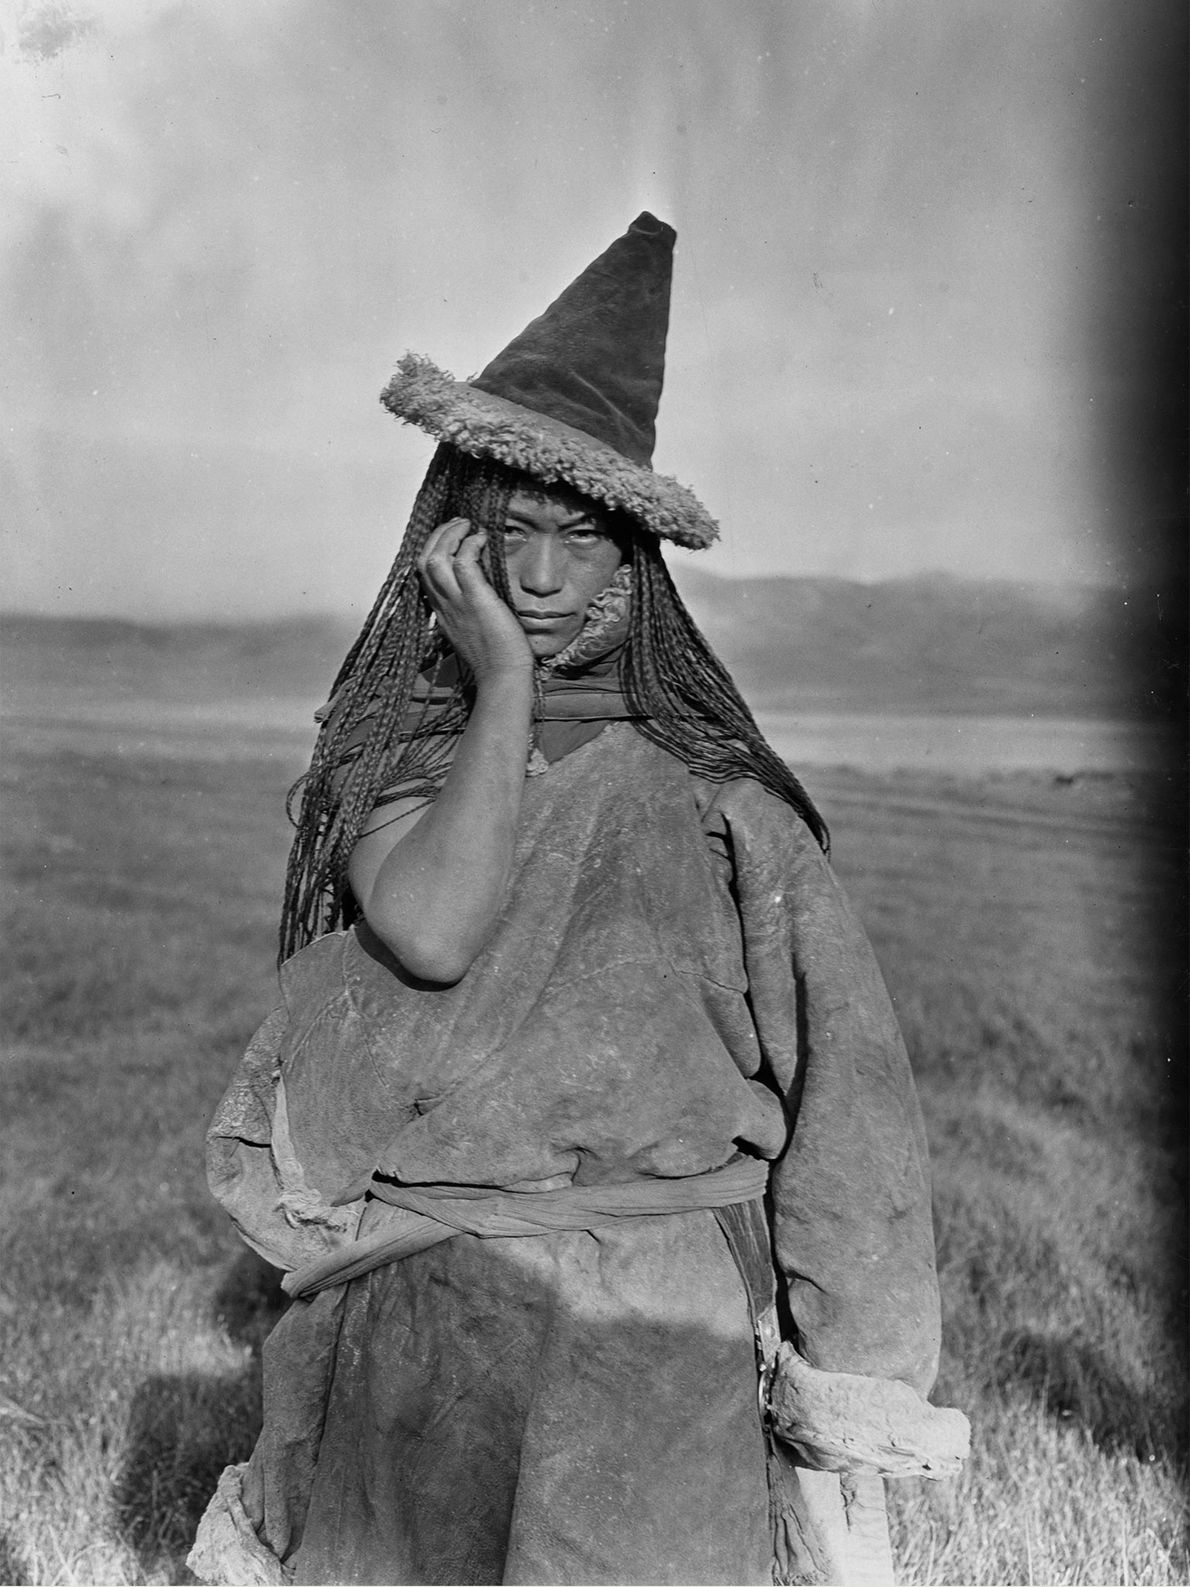 A nomadic Tibetan woman in the People's Republic of China.